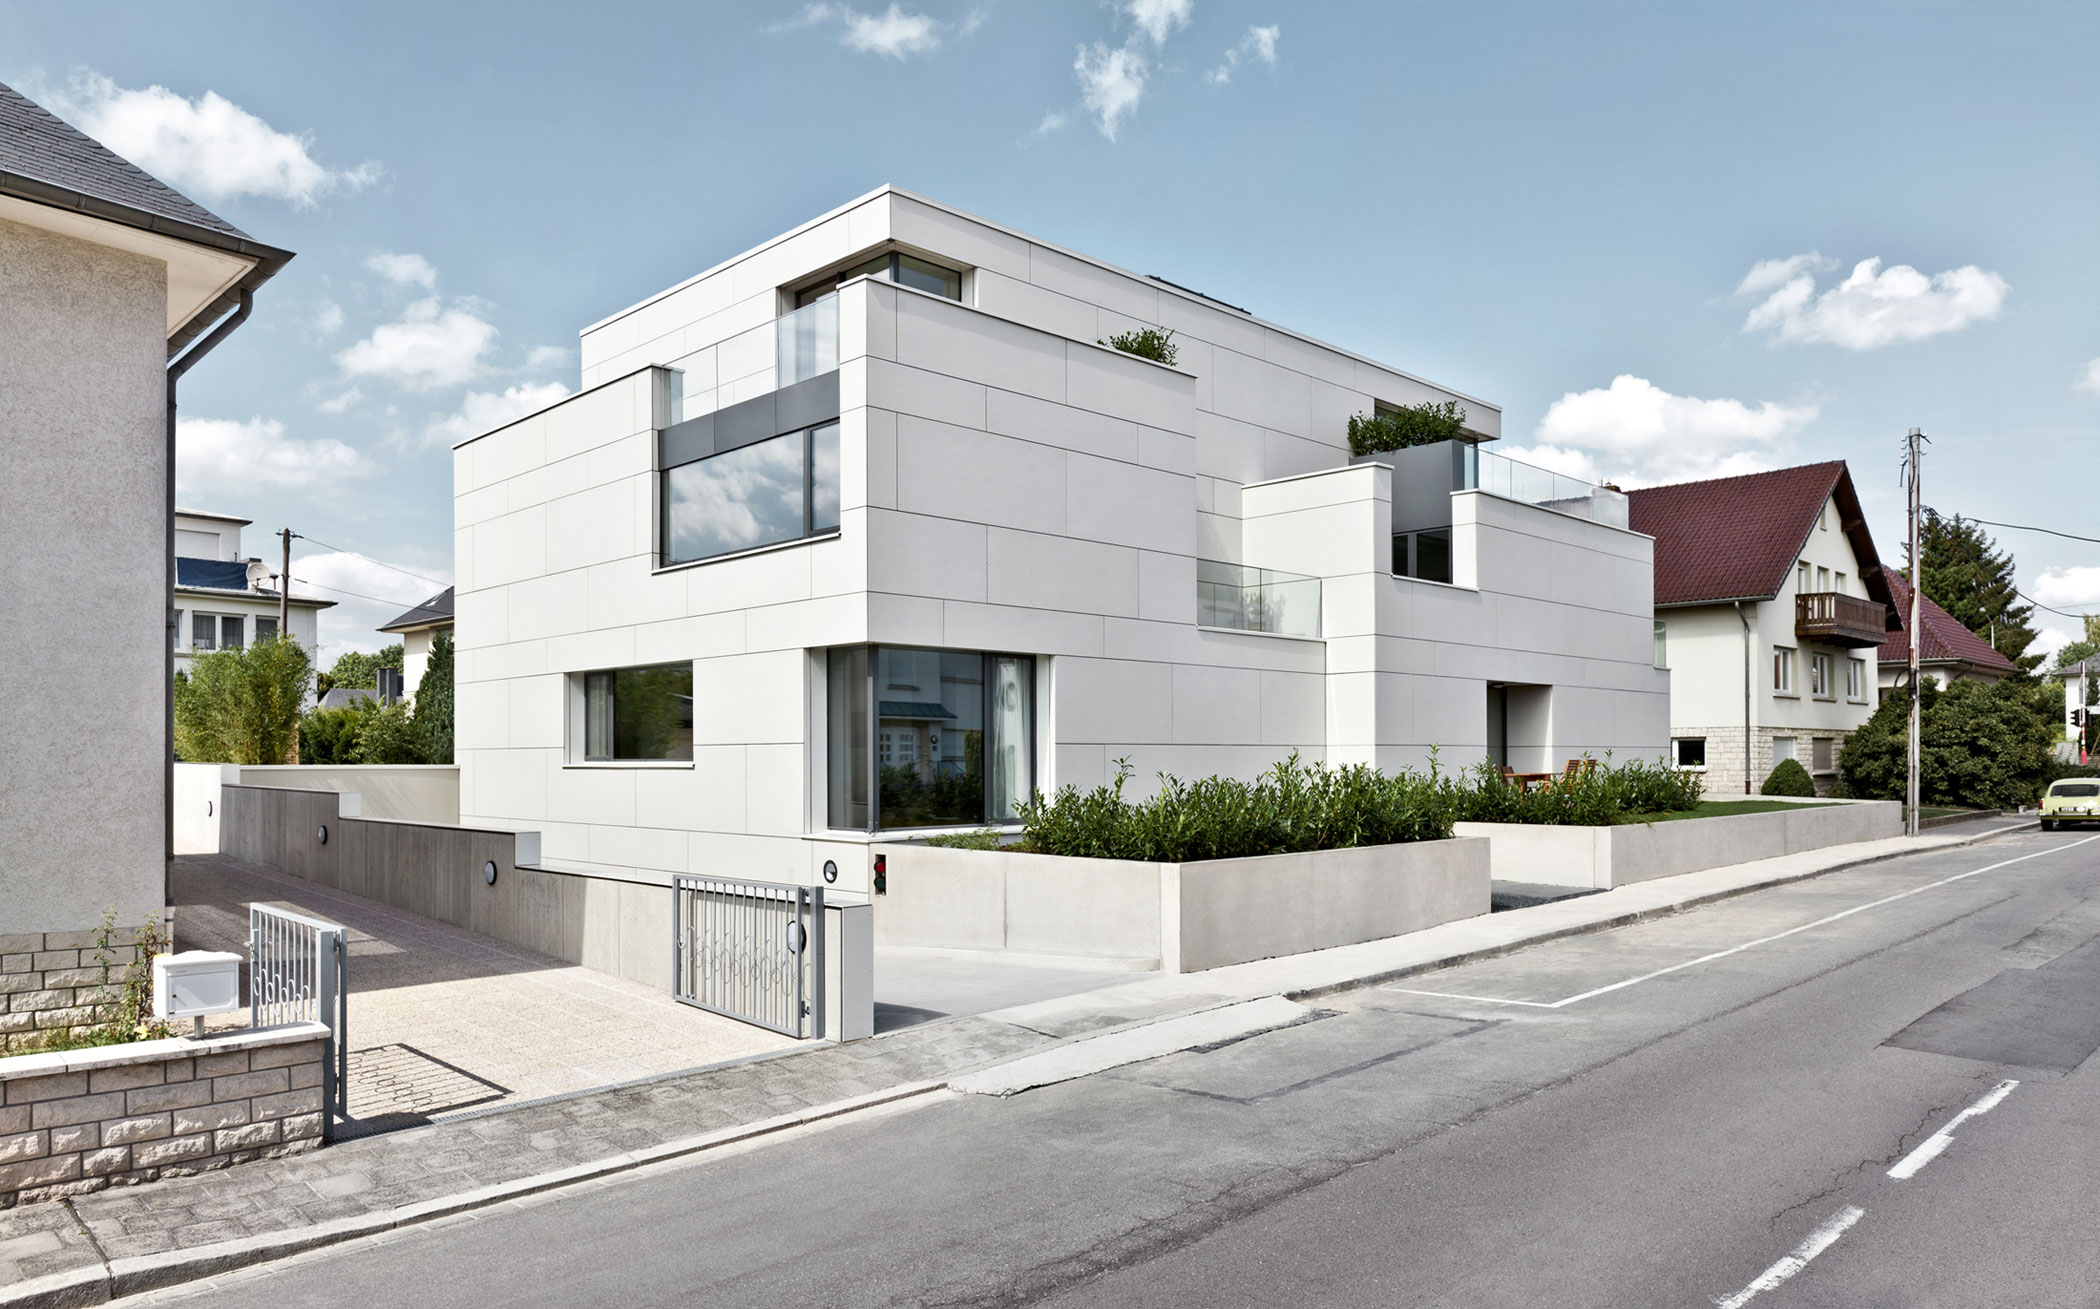 Housing building of seven units by METAFORM architecture (2)